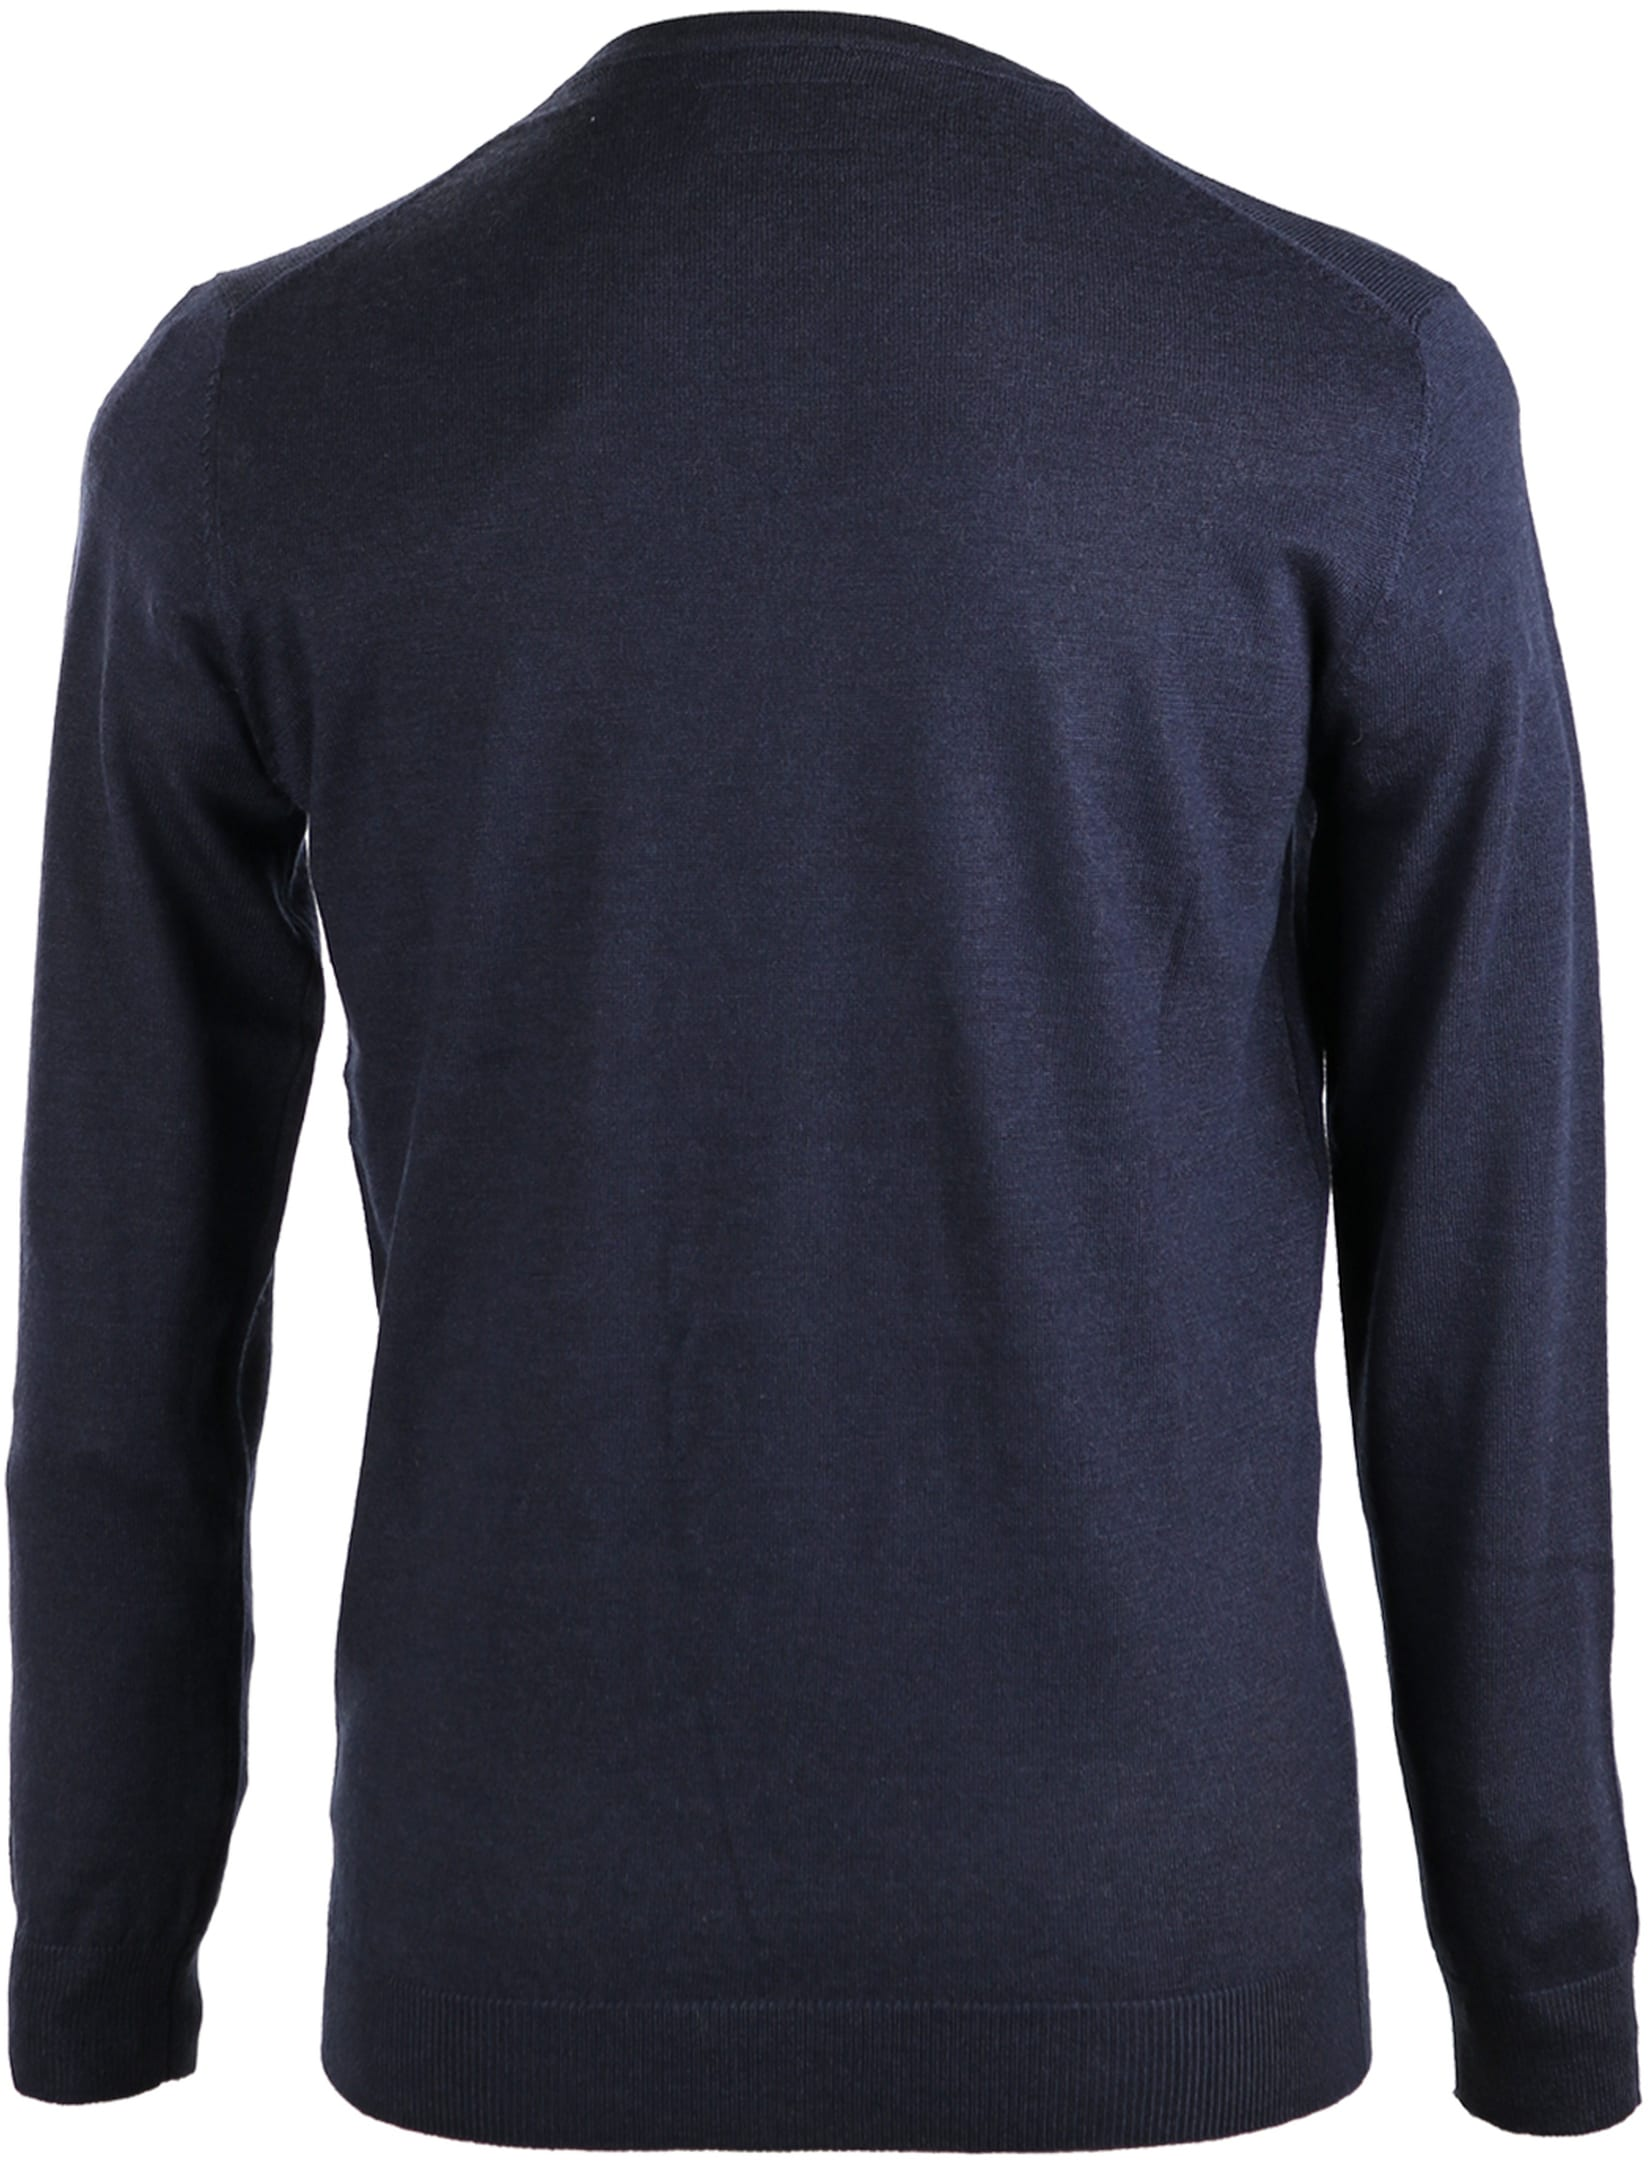 Suitable Pullover Merino Wol Donkerblauw foto 1